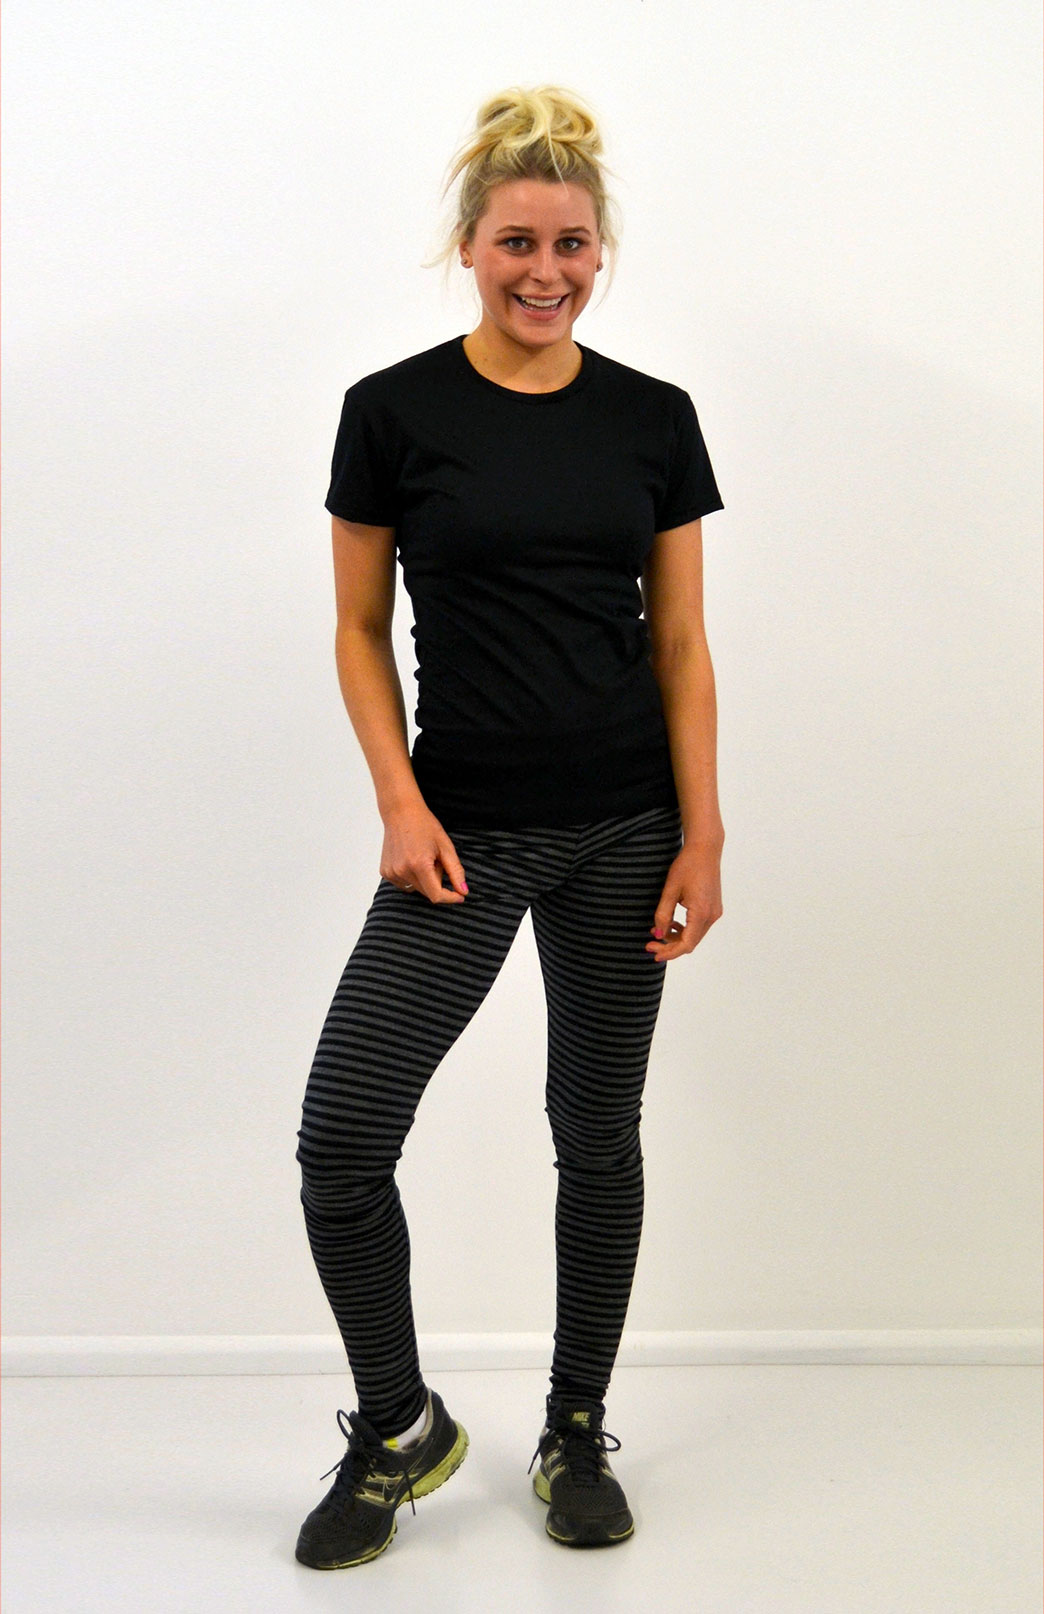 220g Leggings | 220g -